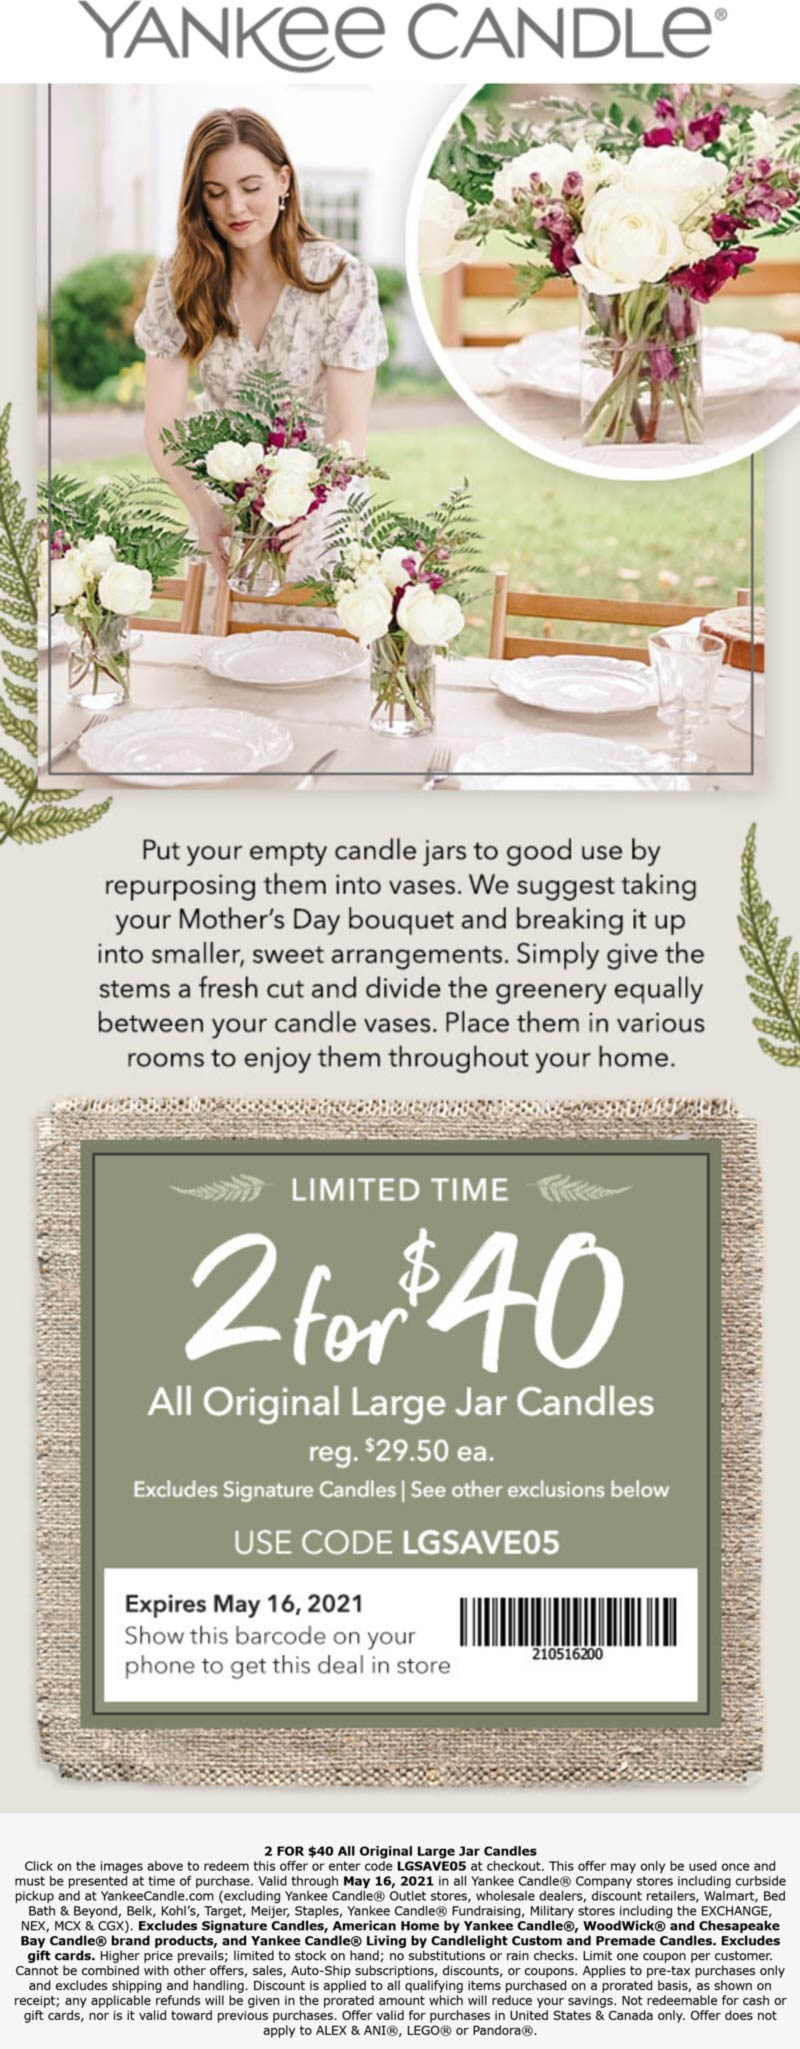 Yankee Candle stores Coupon  2 for $40 on large candles at Yankee Candle, or online via promo code LGSAVE05 #yankeecandle